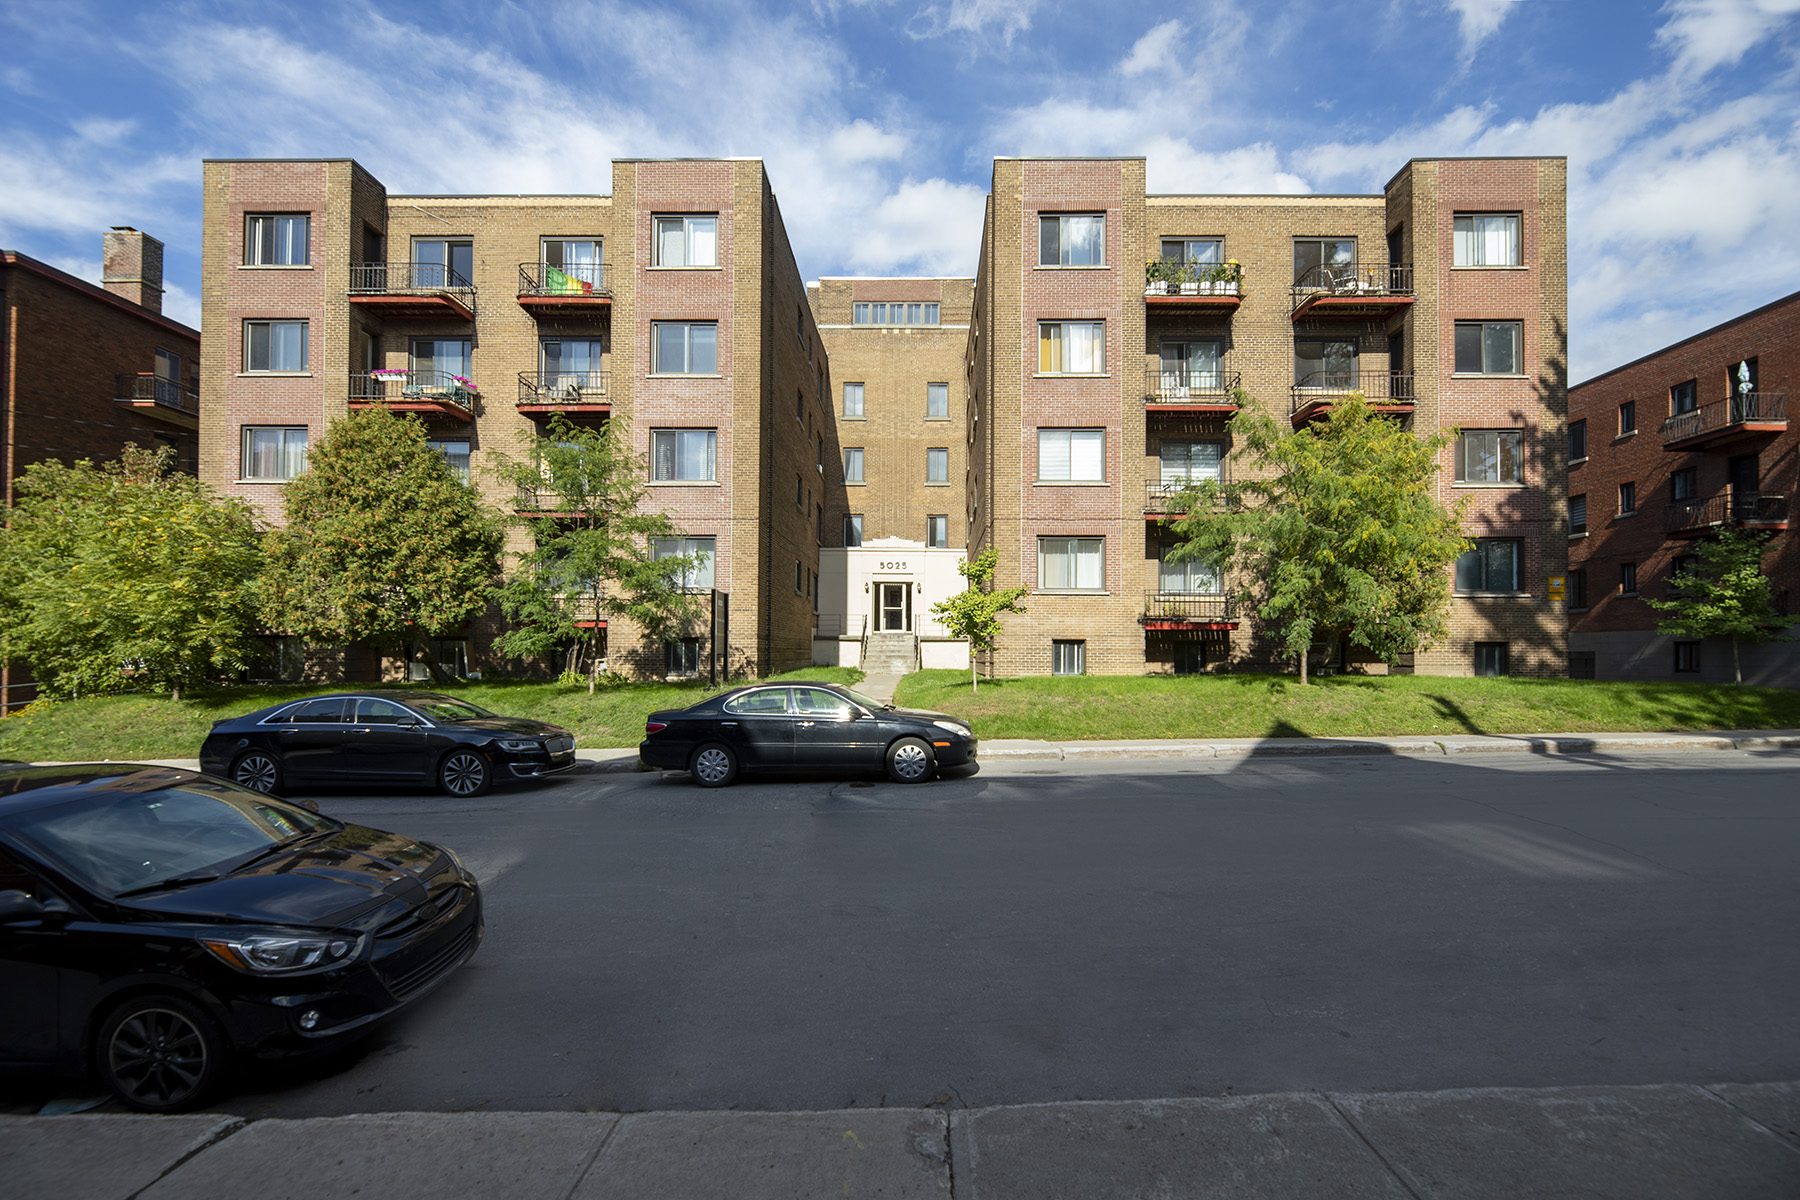 1 bedroom Apartments for rent in Cote-St-Luc at Les immeubles MacDonald - Photo 03 - RentQuebecApartments – L401535